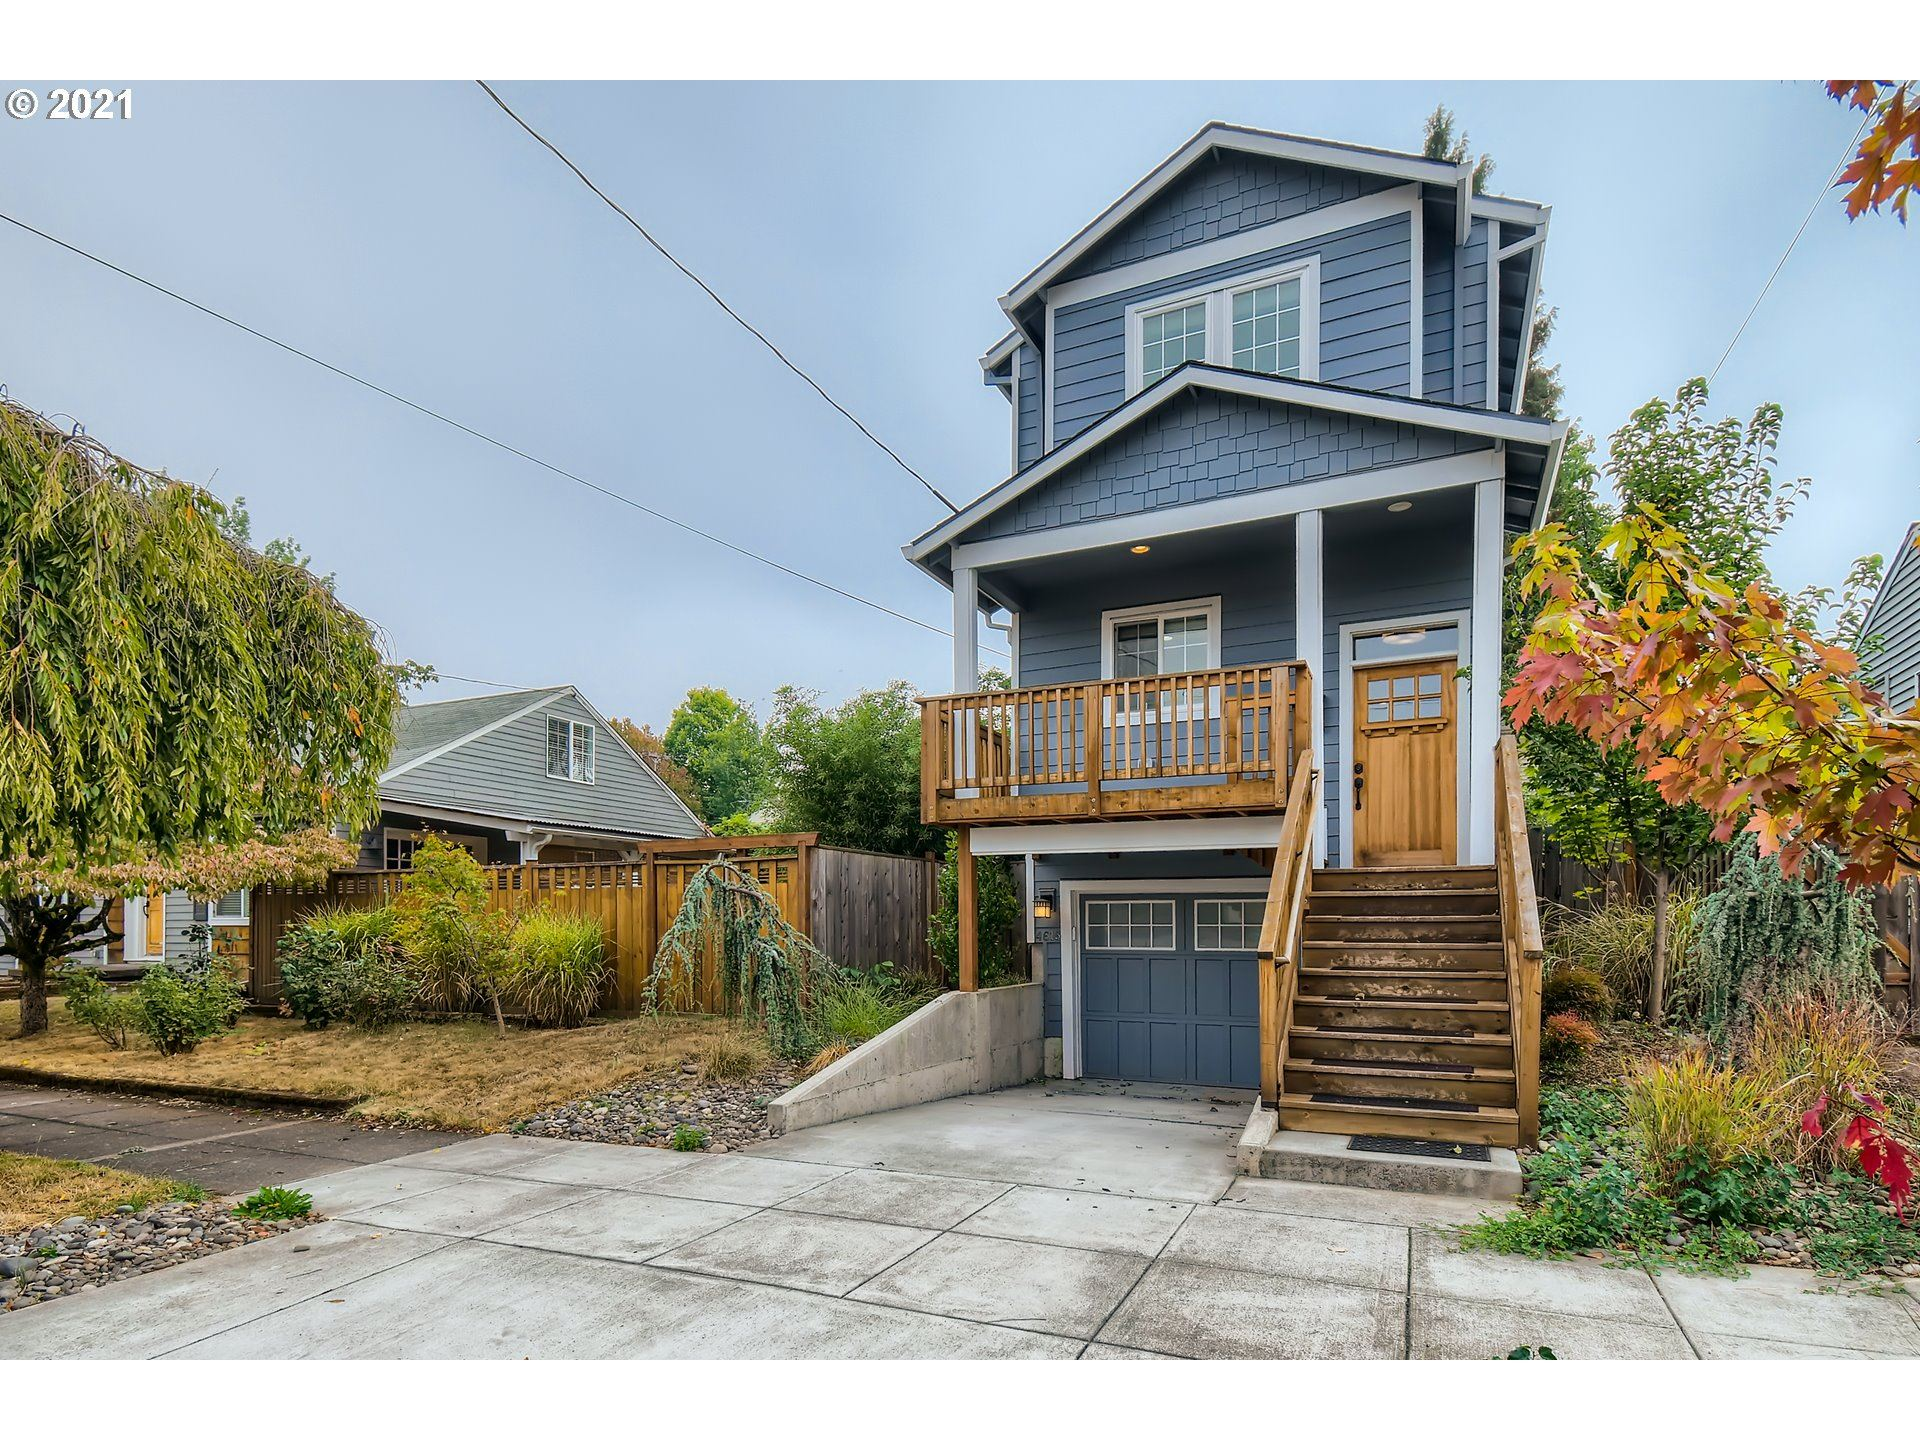 4616 SE 37TH AVE, Portland, OR 97202 - MLS#: 21064472